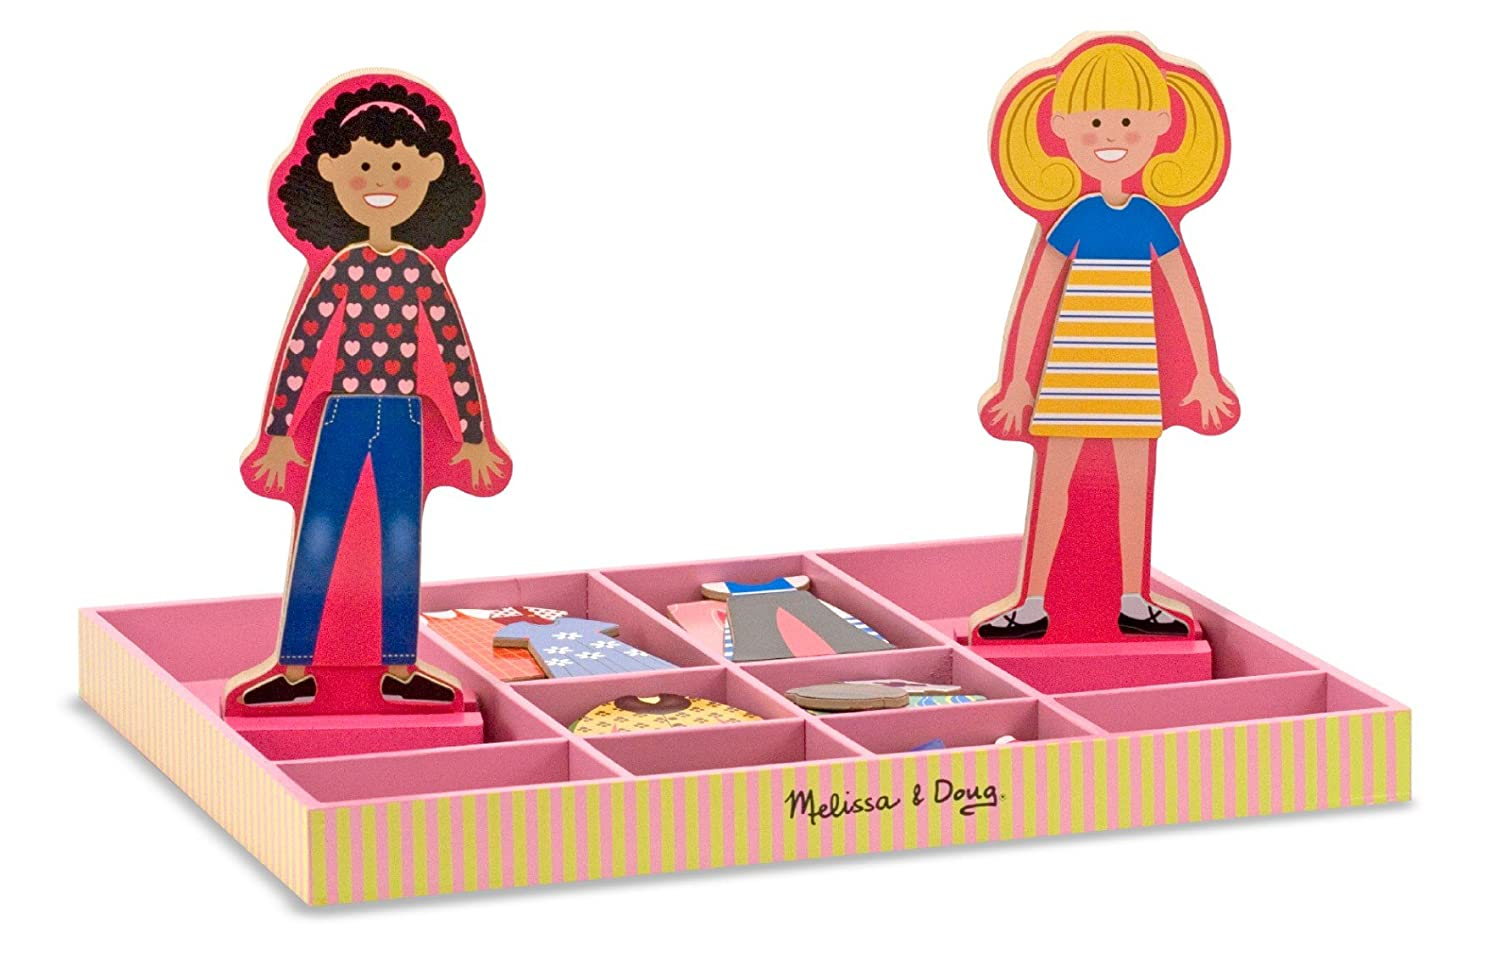 Melissa & Doug - Abby und Emma Magnetische Anzieh, Puppen By (author) Not Applicable 14940